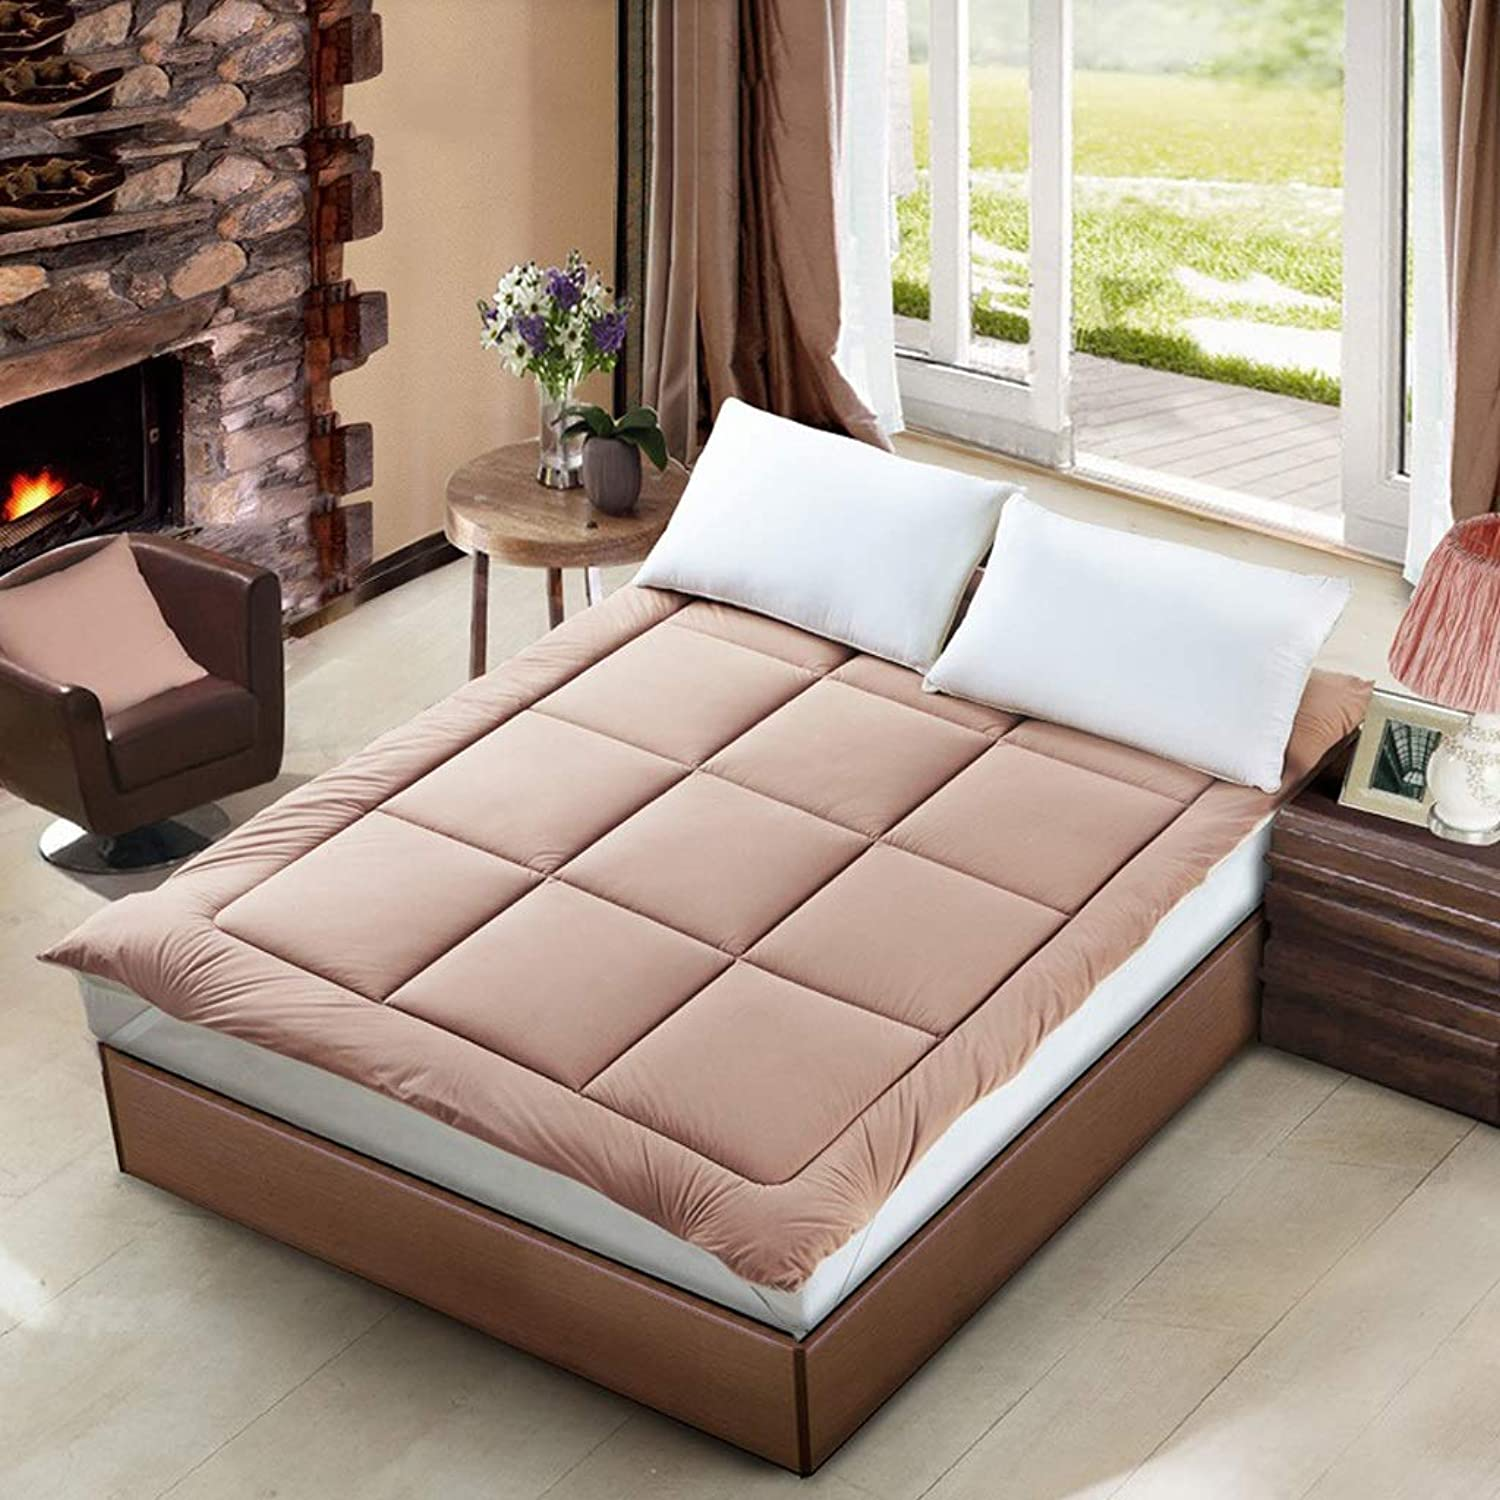 Mattress Topper Predection Pad Tatami Bed Mattress Be Made A Scapegoat Bed Linings Both Front and Back Can Be Used (color   Brown, Size   1.5 x 2.0 m (5 ft))